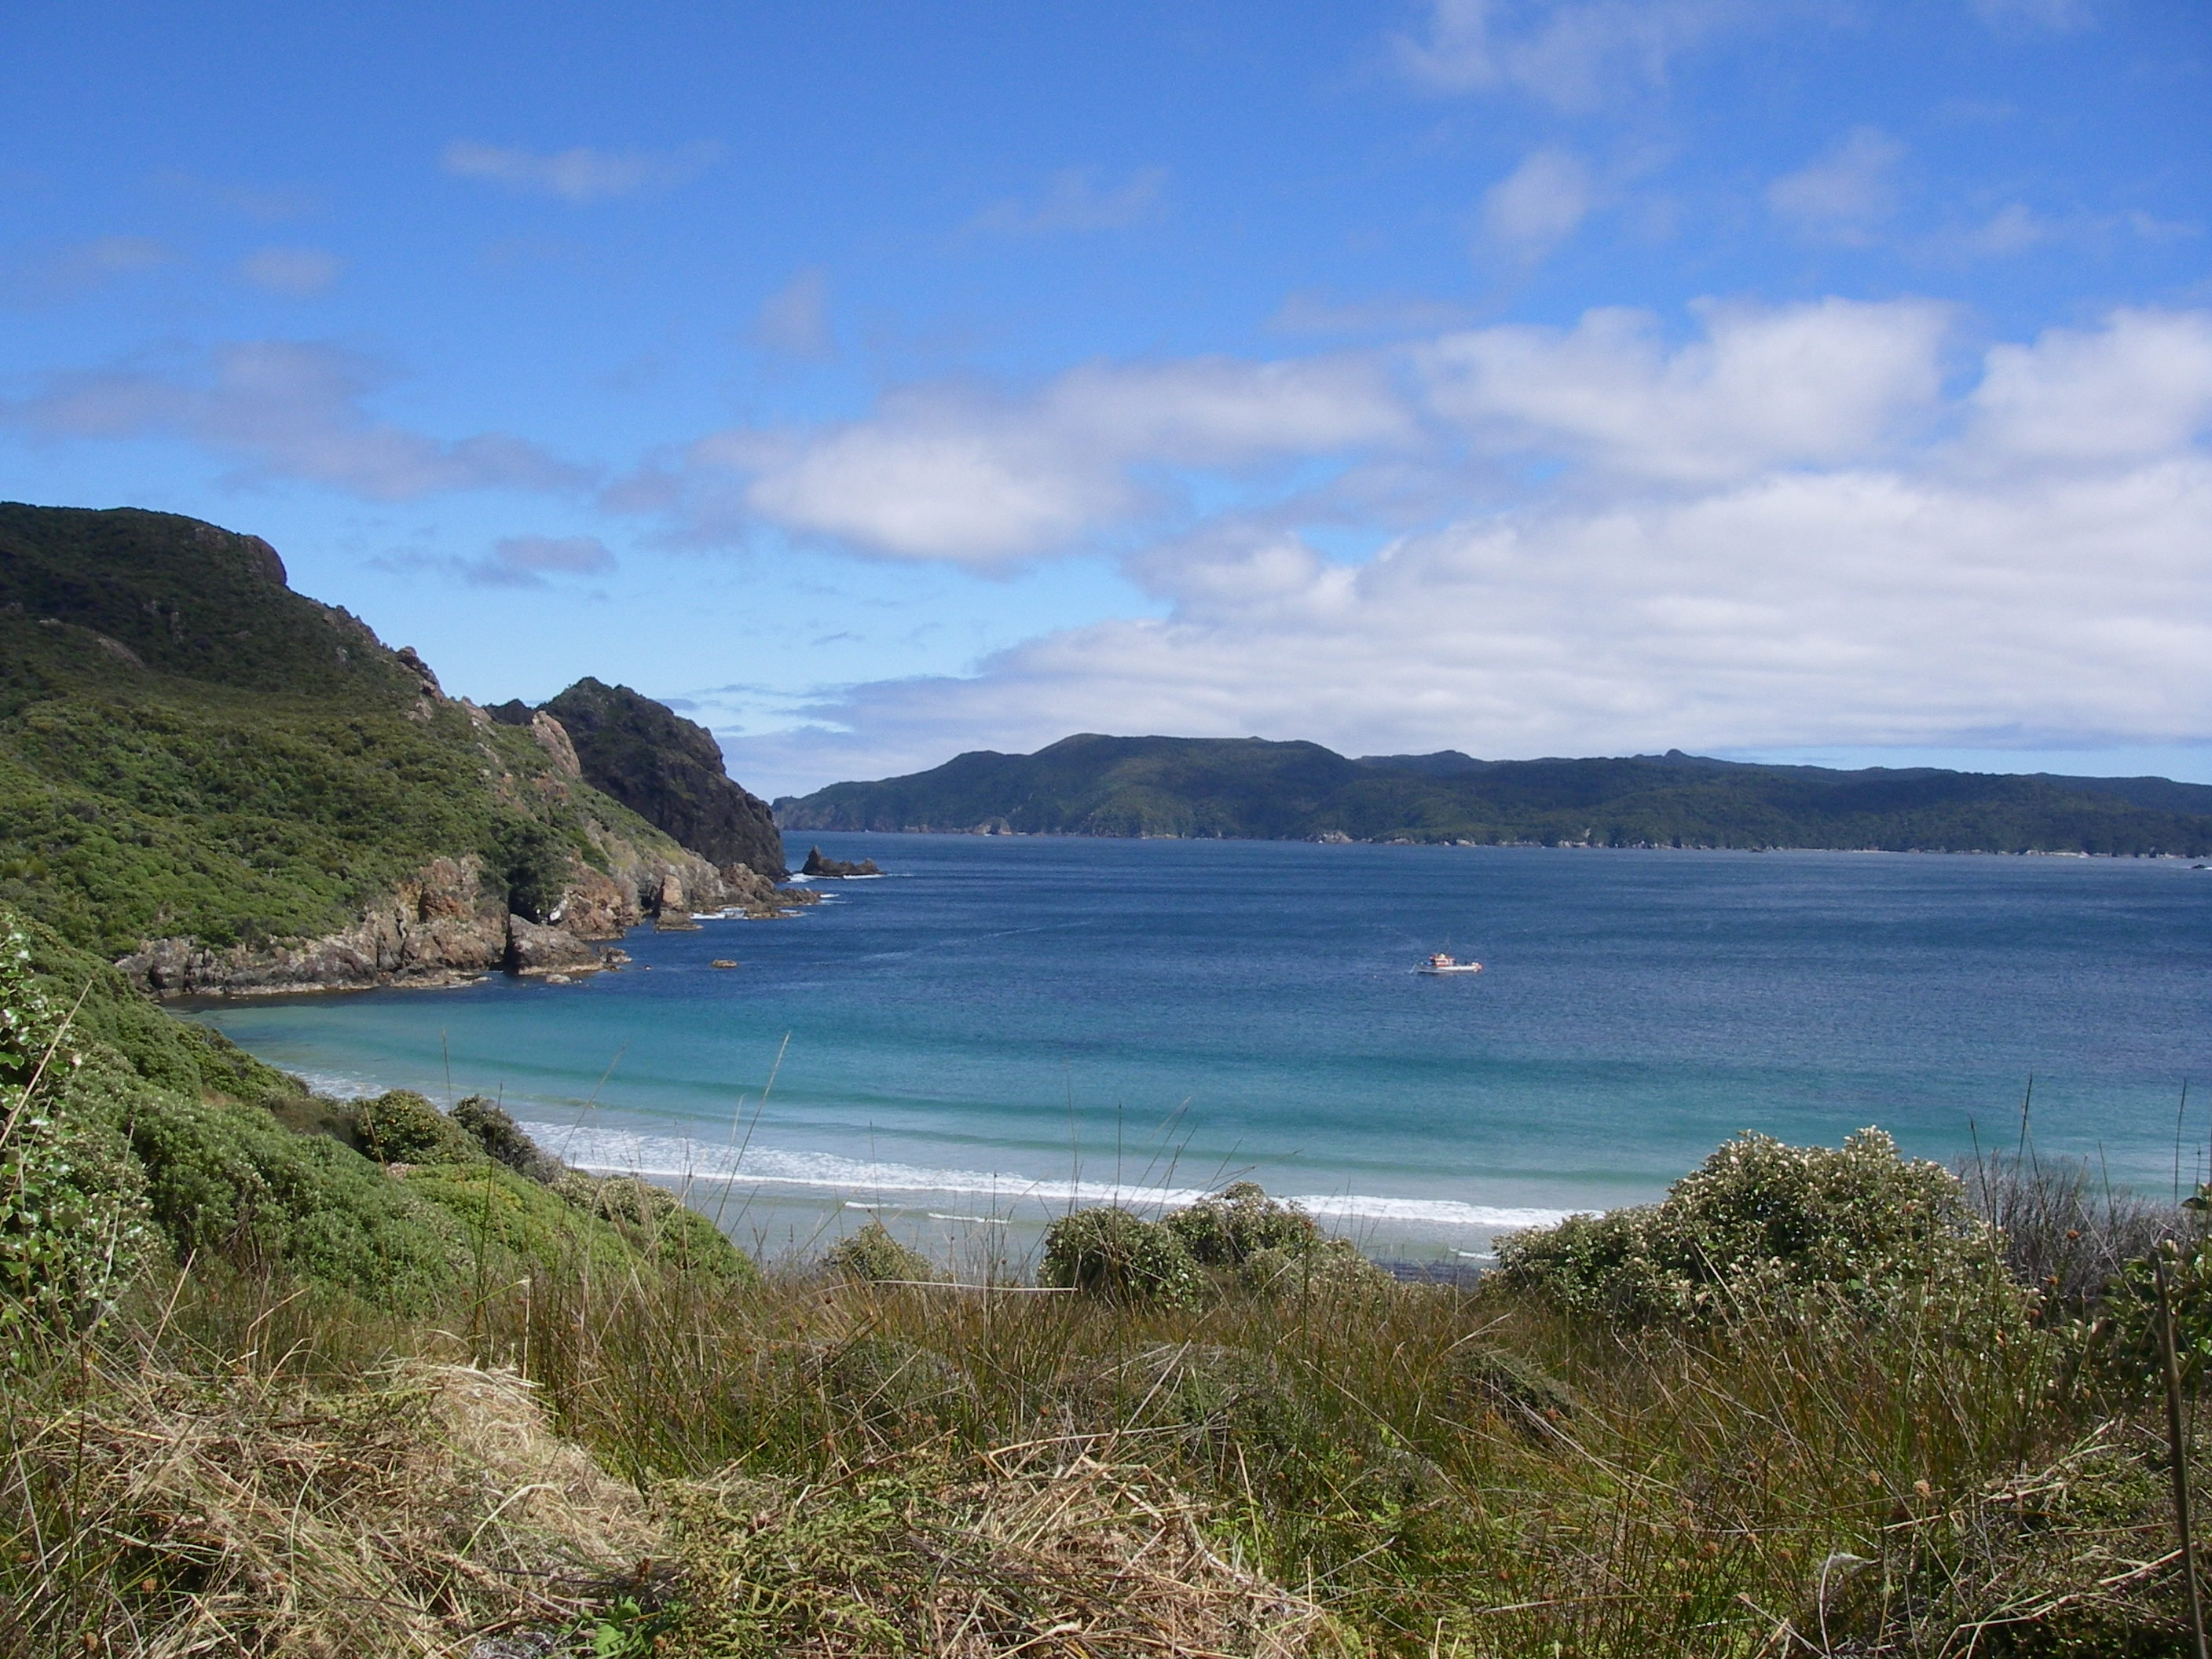 Waituna Beach